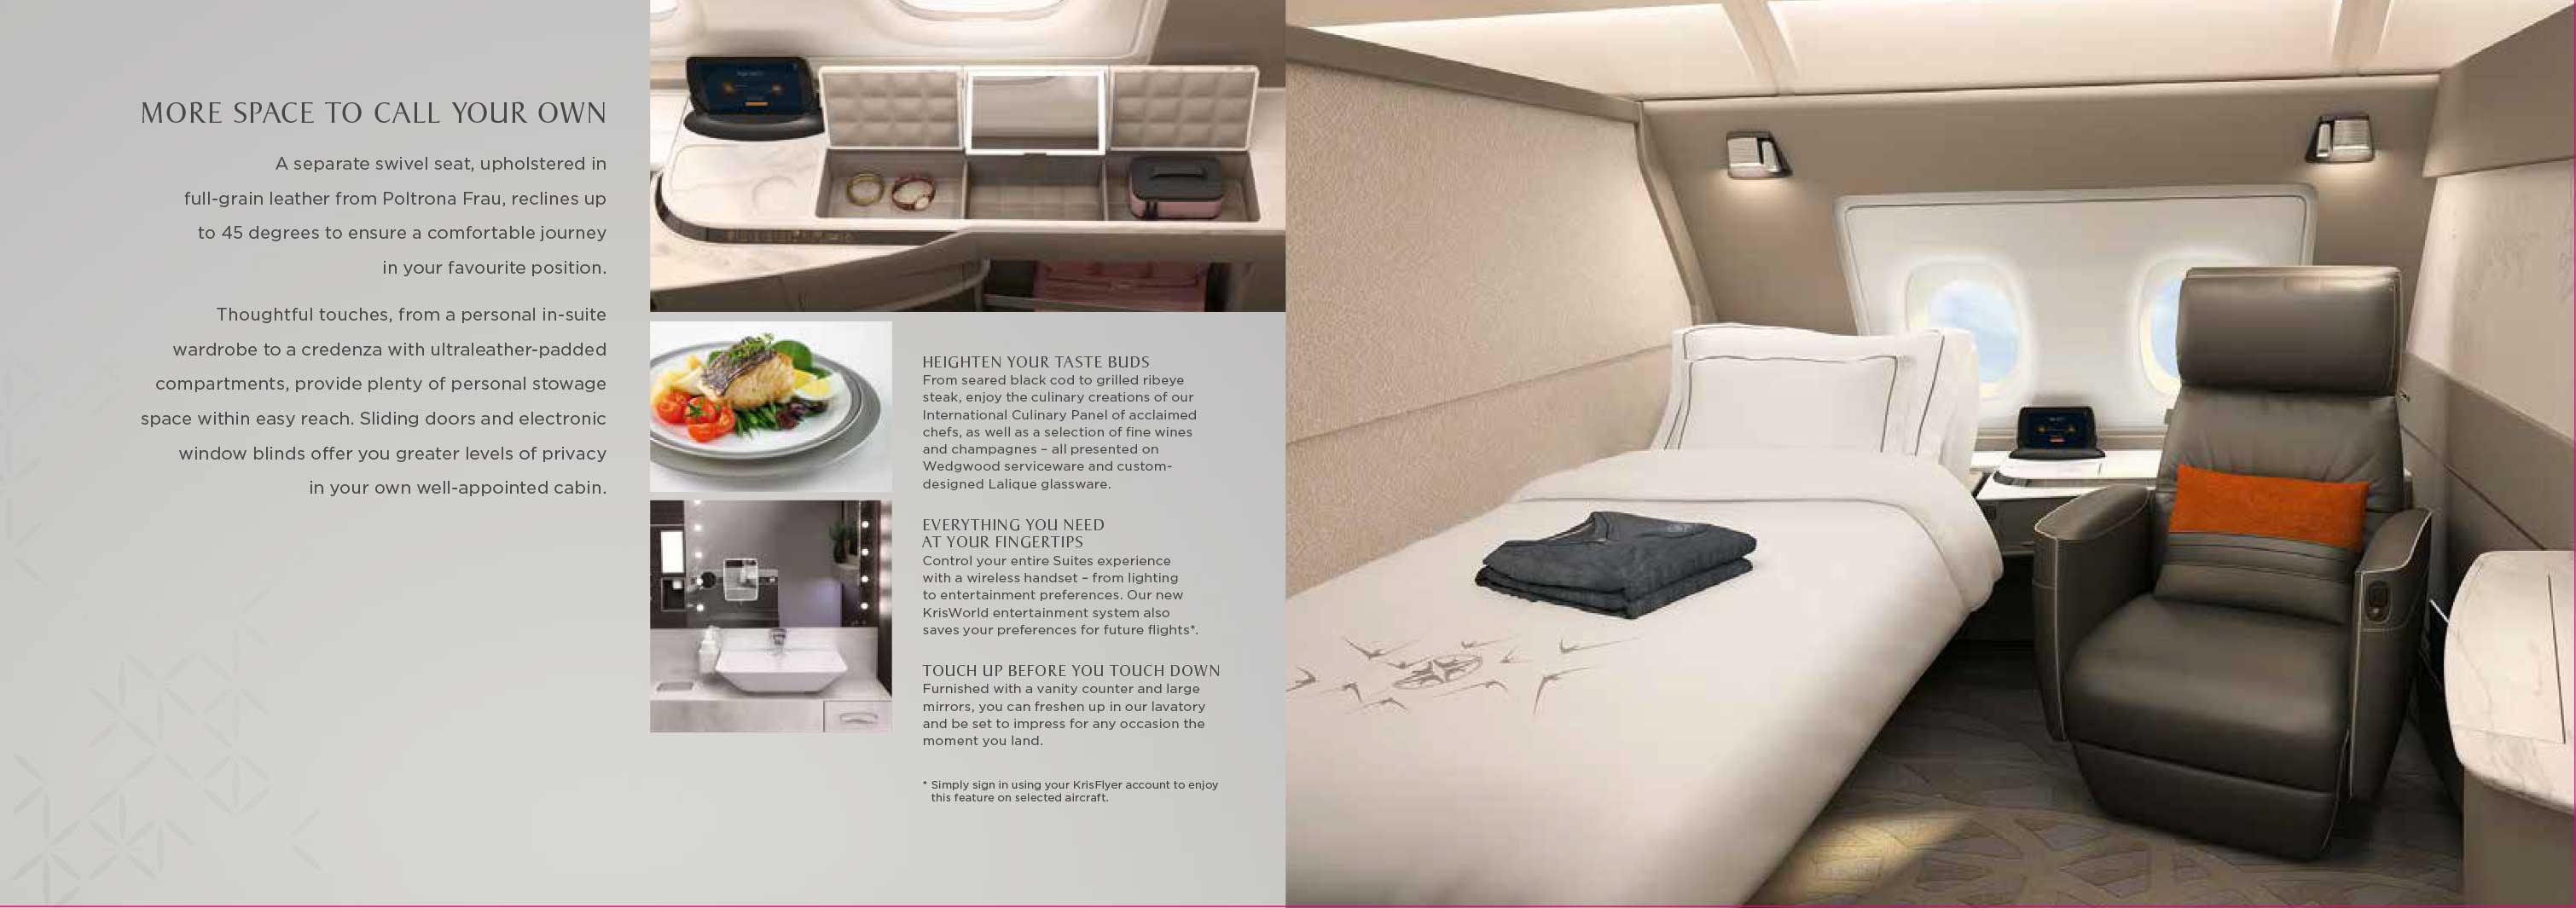 SIA-A380-New-Cabin-Products-Brochure-4